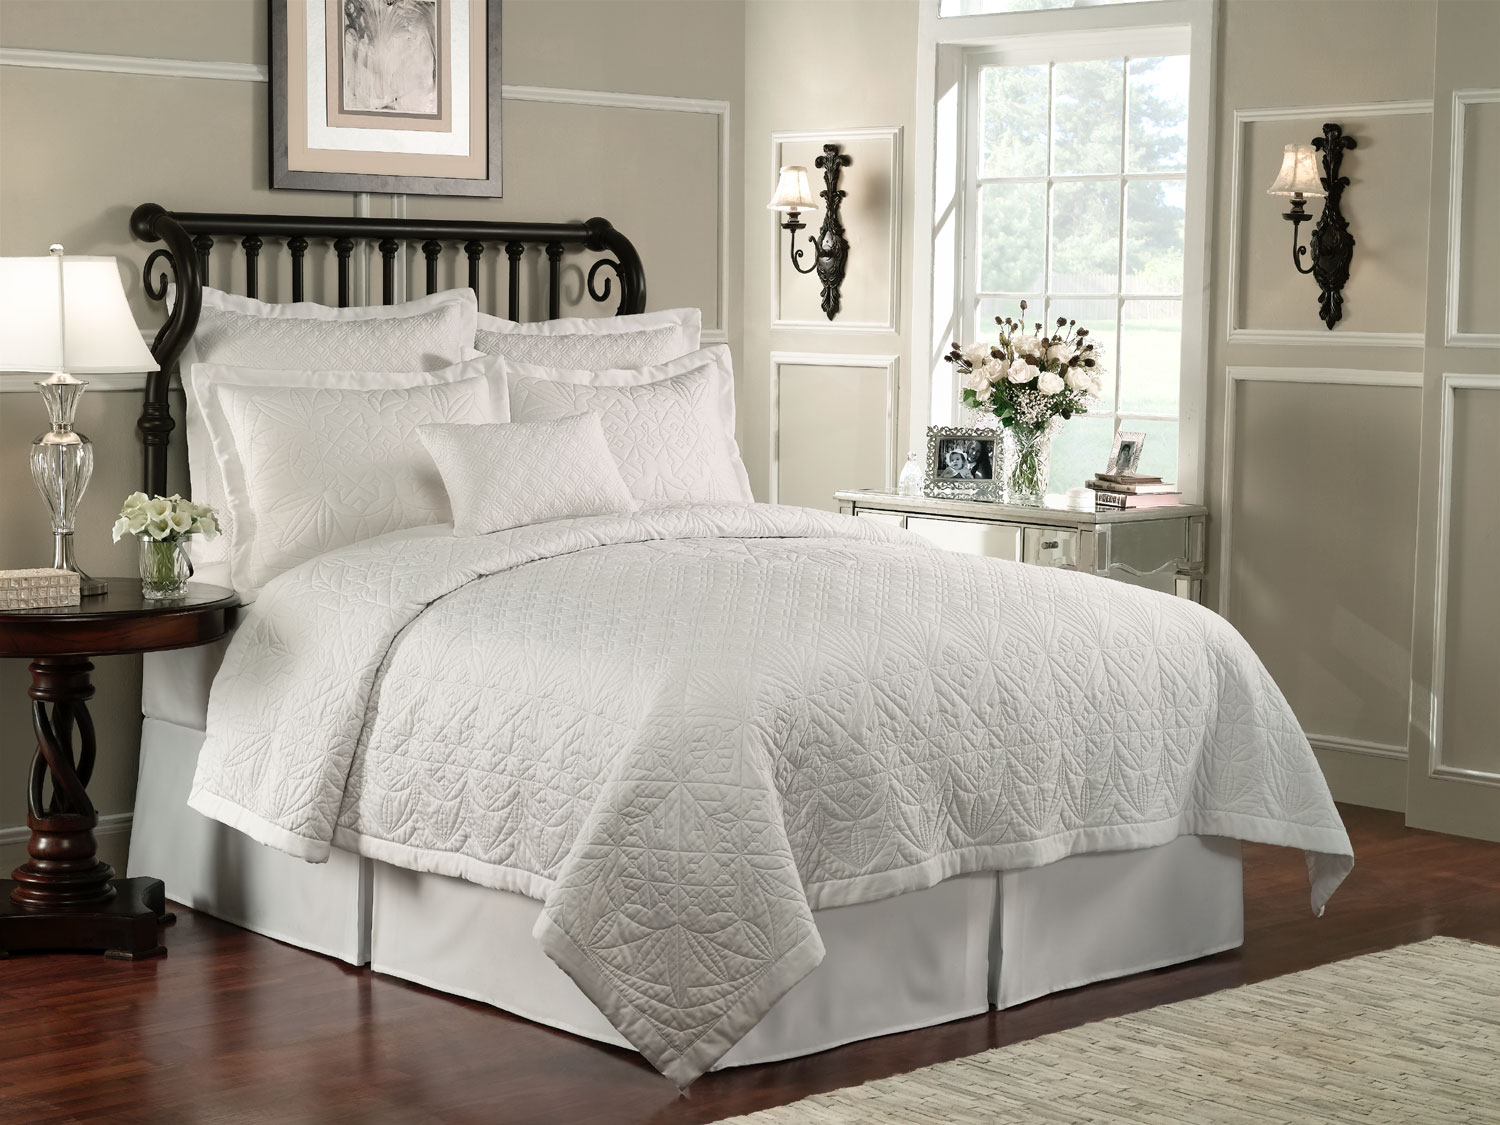 Solid Color Quilts For Beds - photo#4